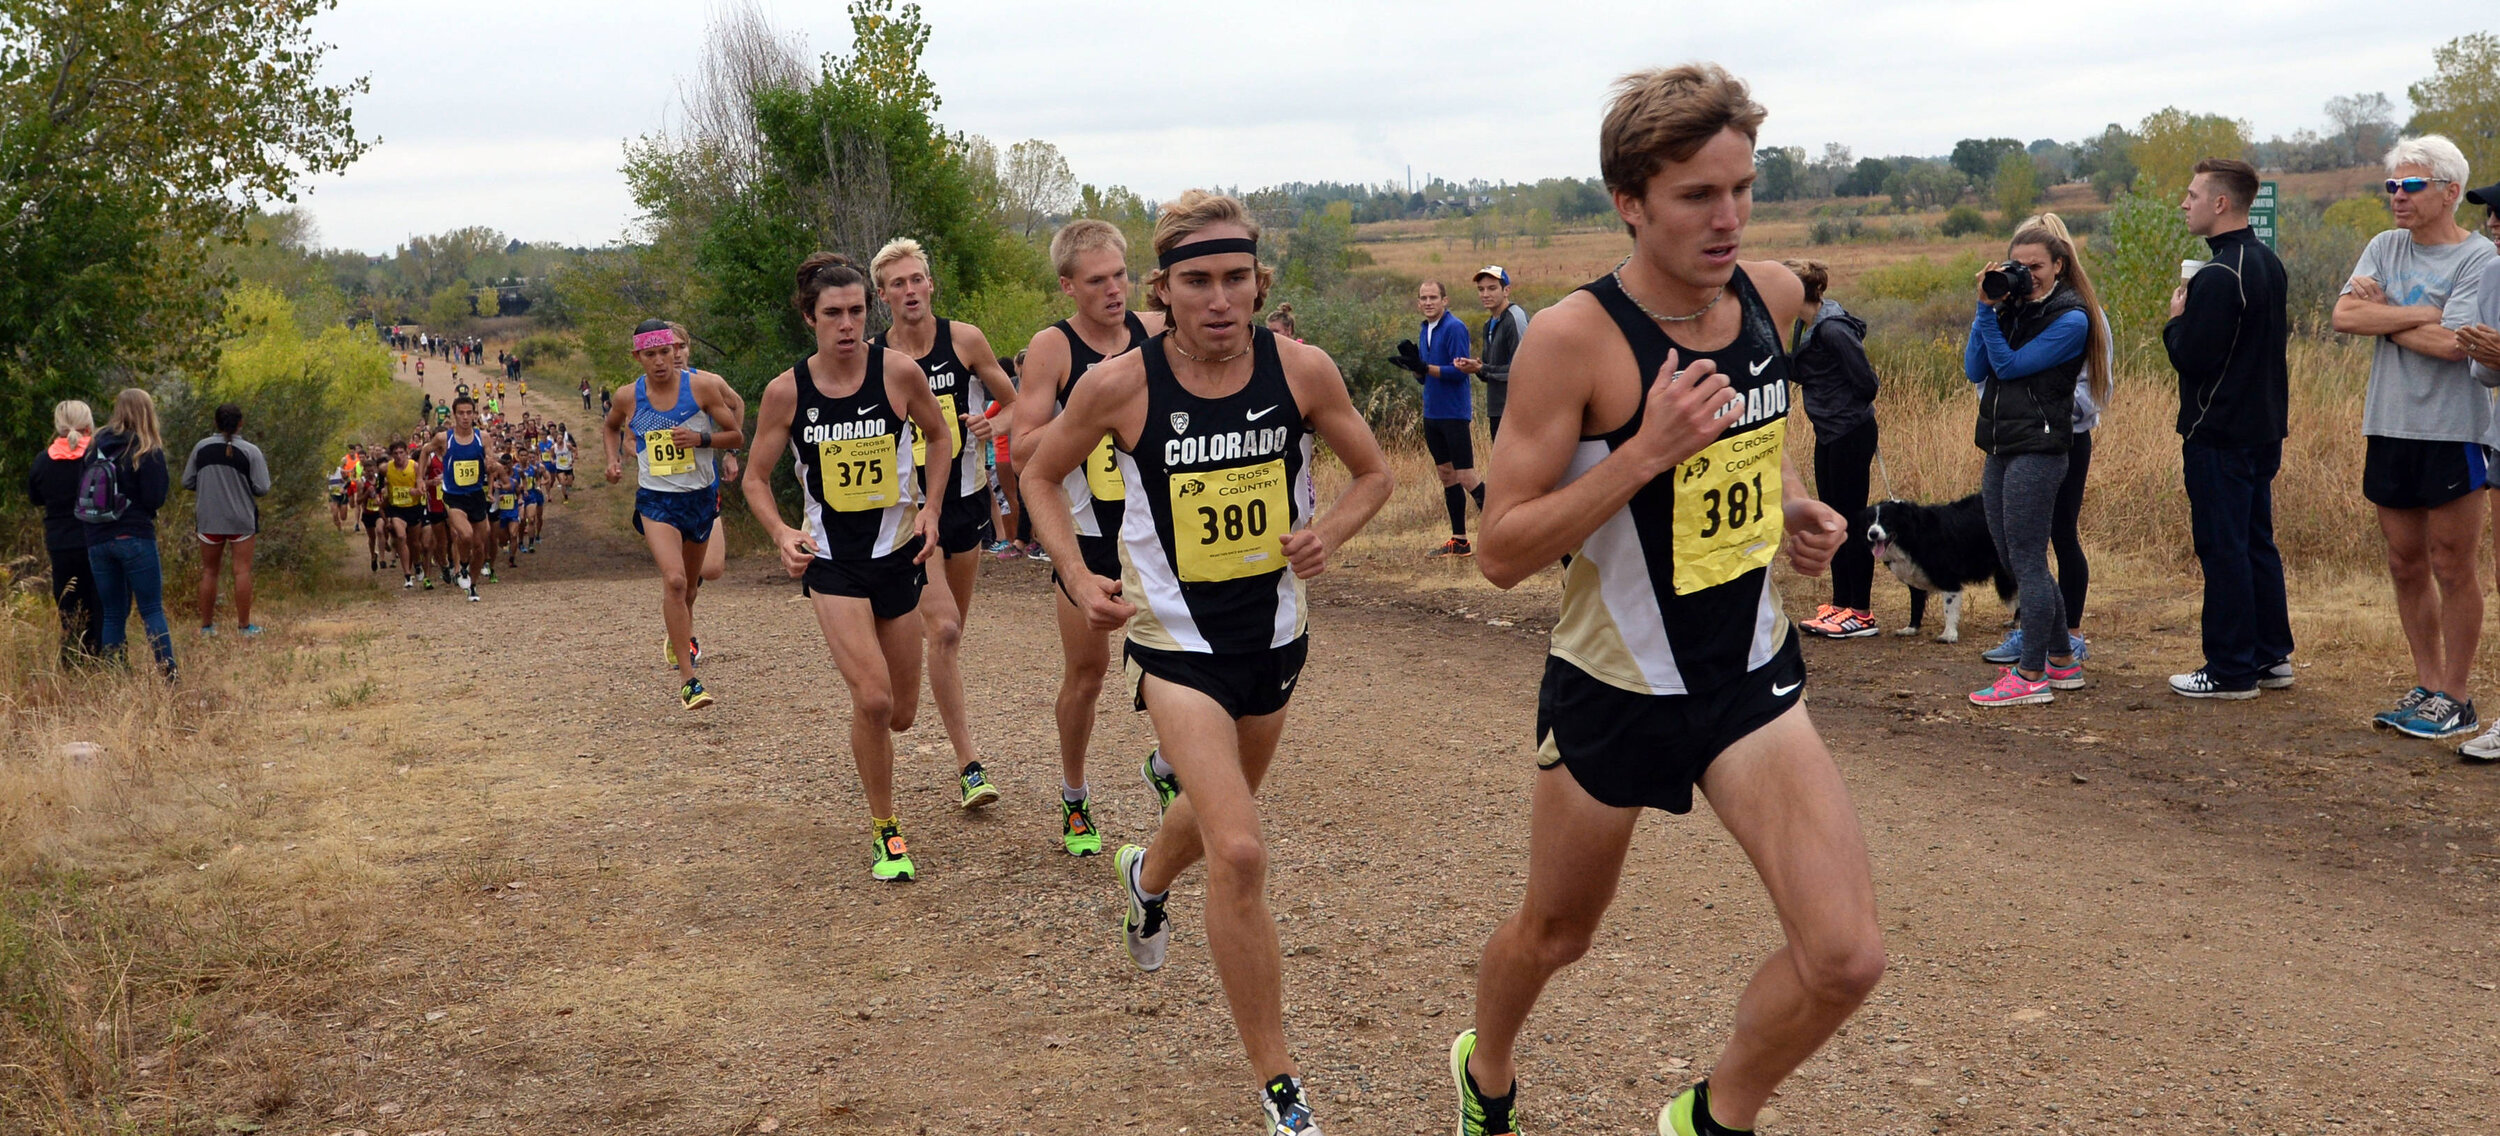 Morgan leading a pack of Buffalo at the Rocky Mountain Shootout in Boulder.